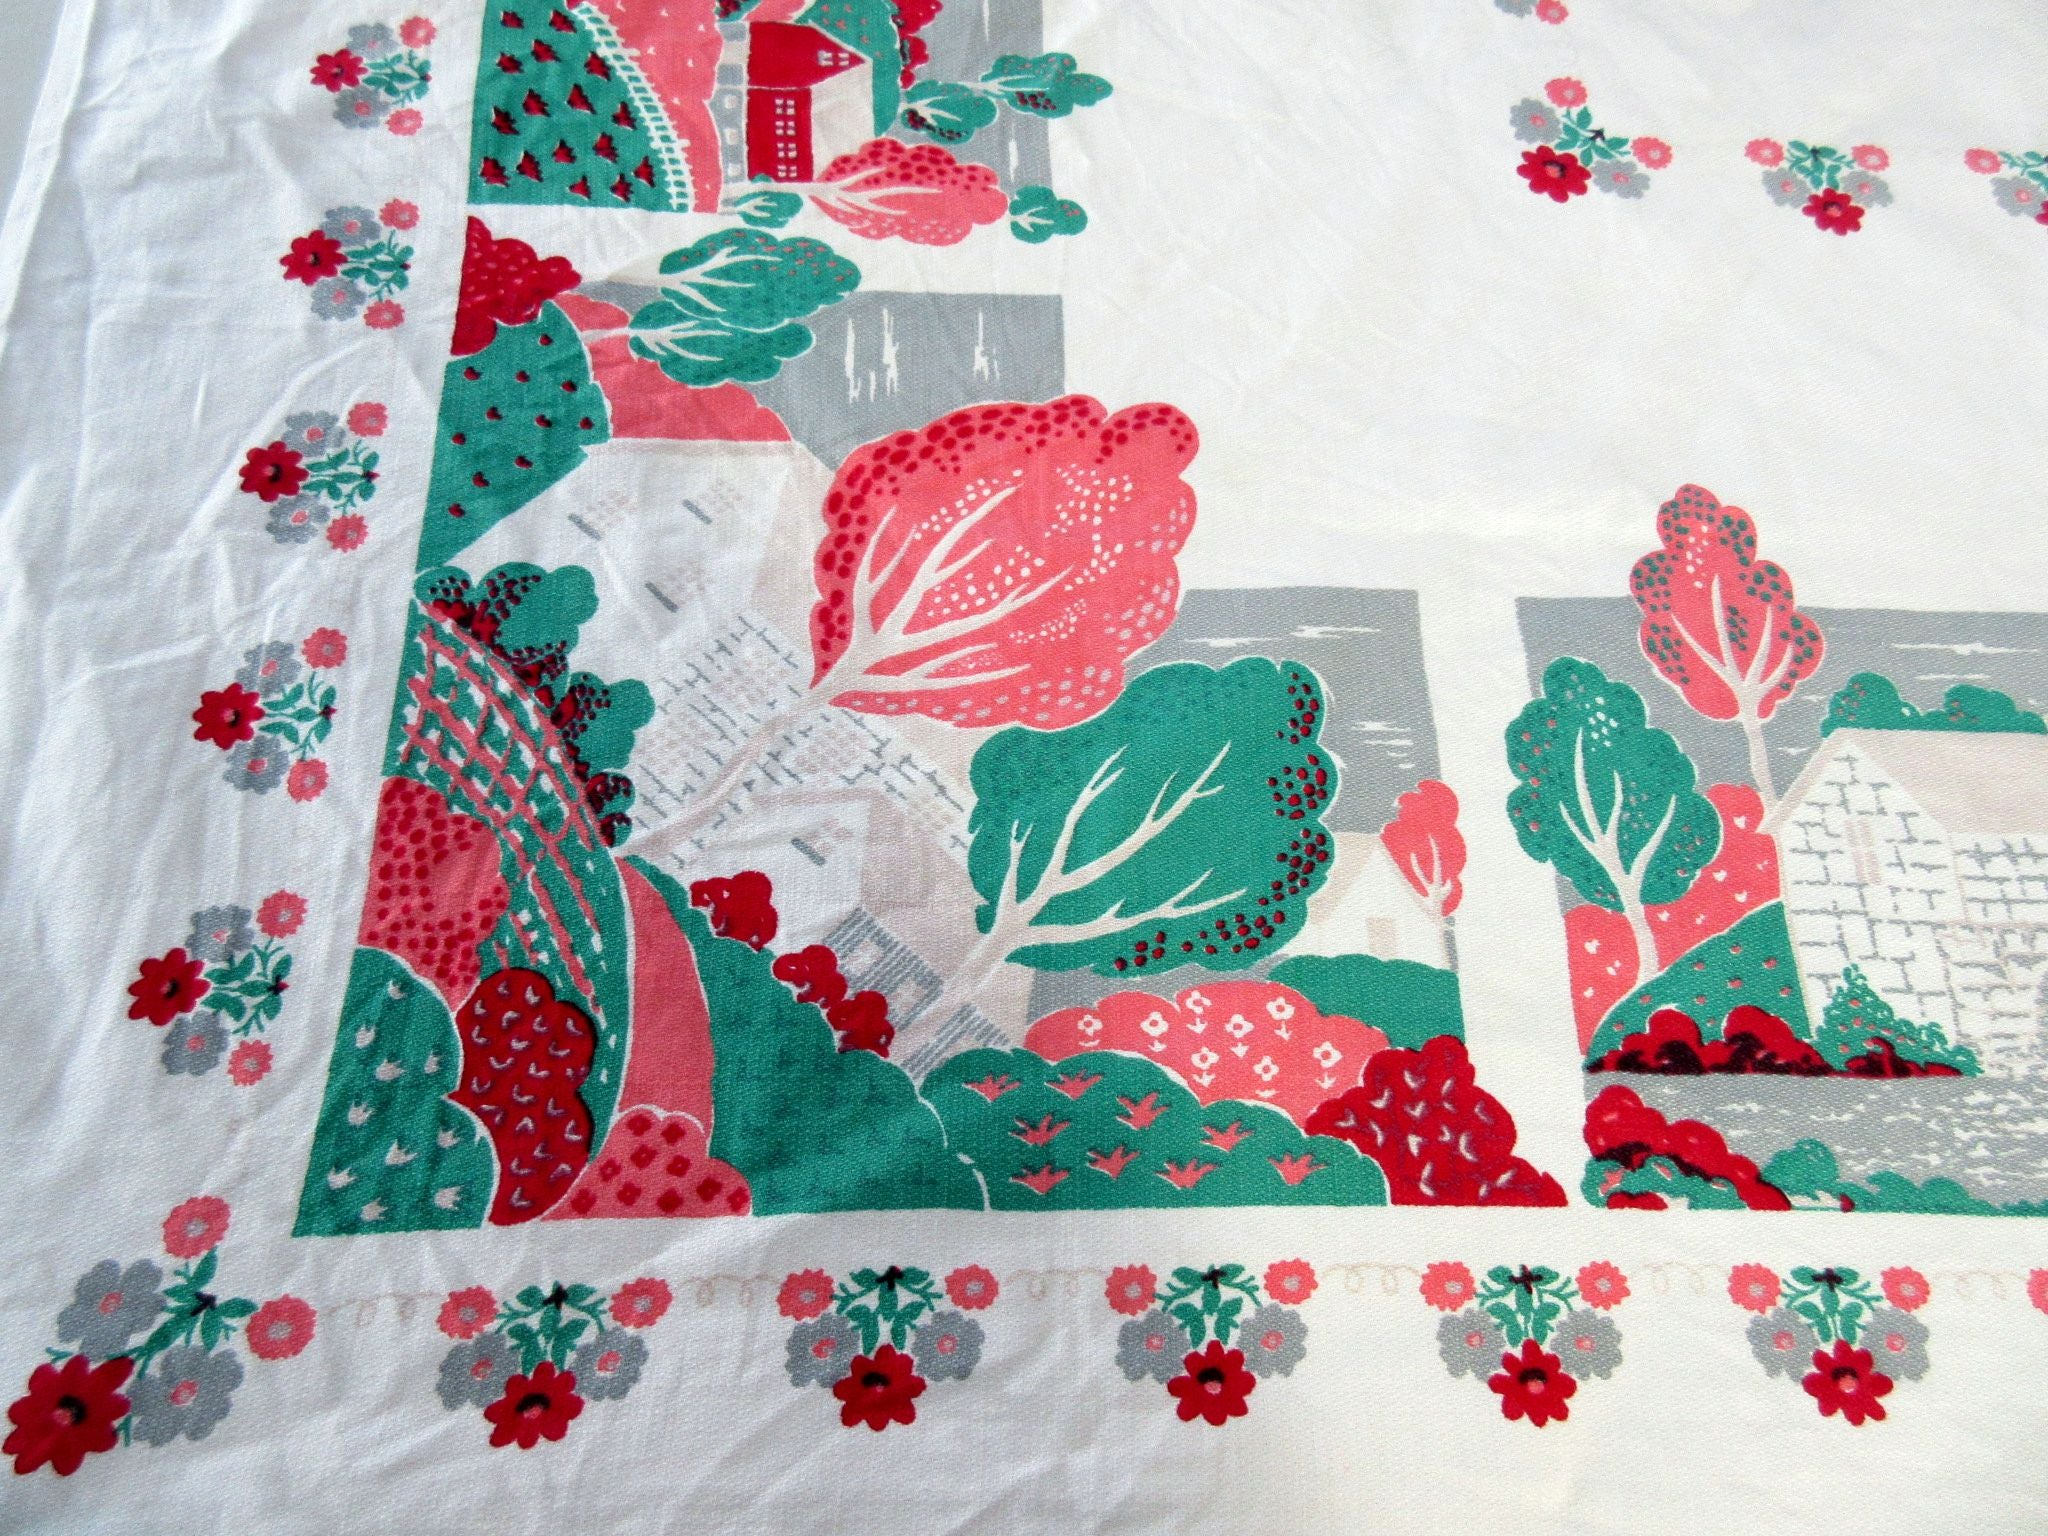 TLC Fall Countryside Trees Novelty Vintage Printed Tablecloth (51 X 48)